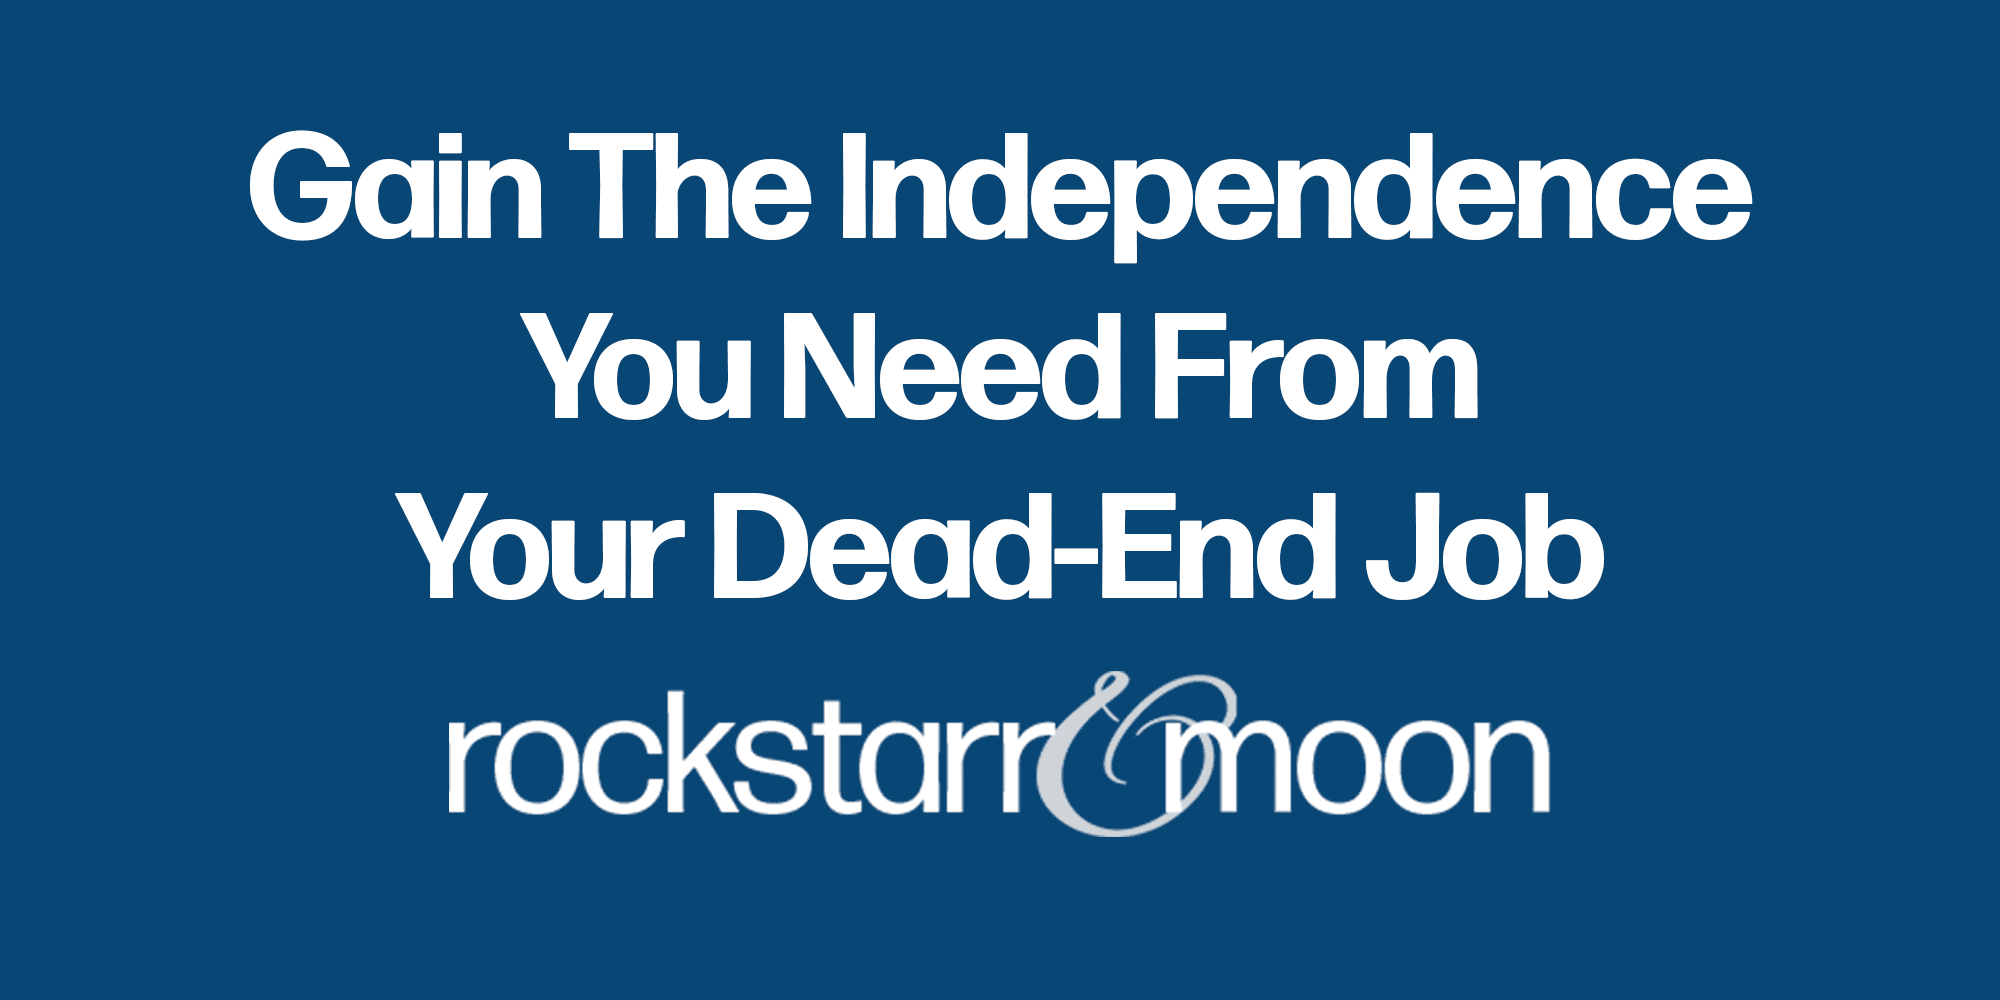 Gain The Independence You Need From Your Dead-End Job